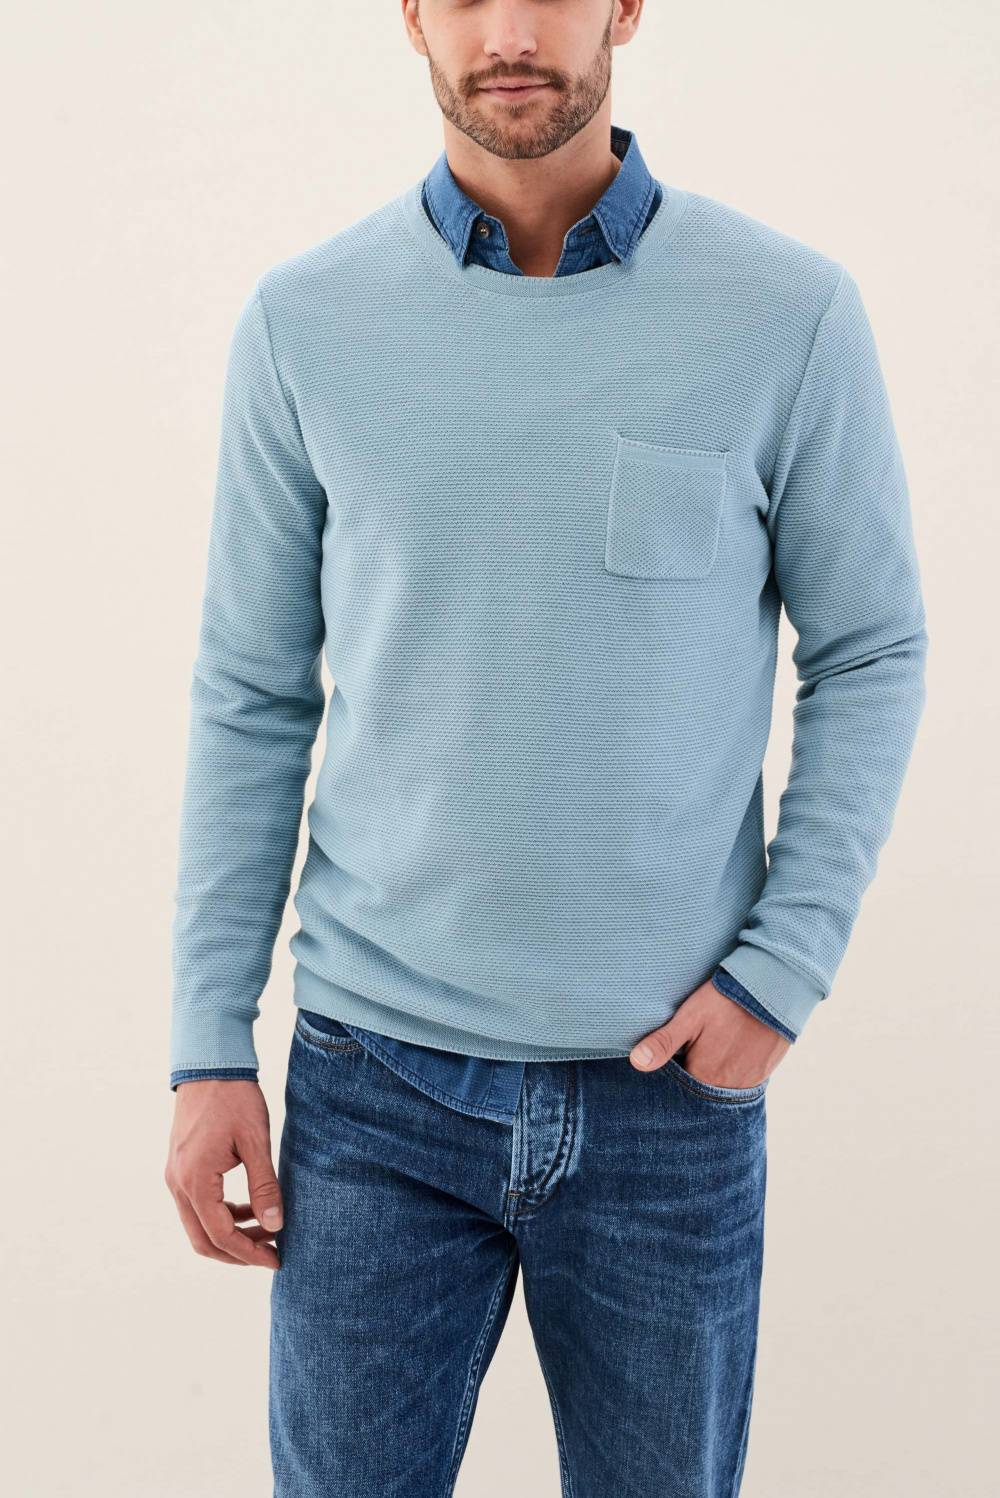 Jumper with pocket - Salsa